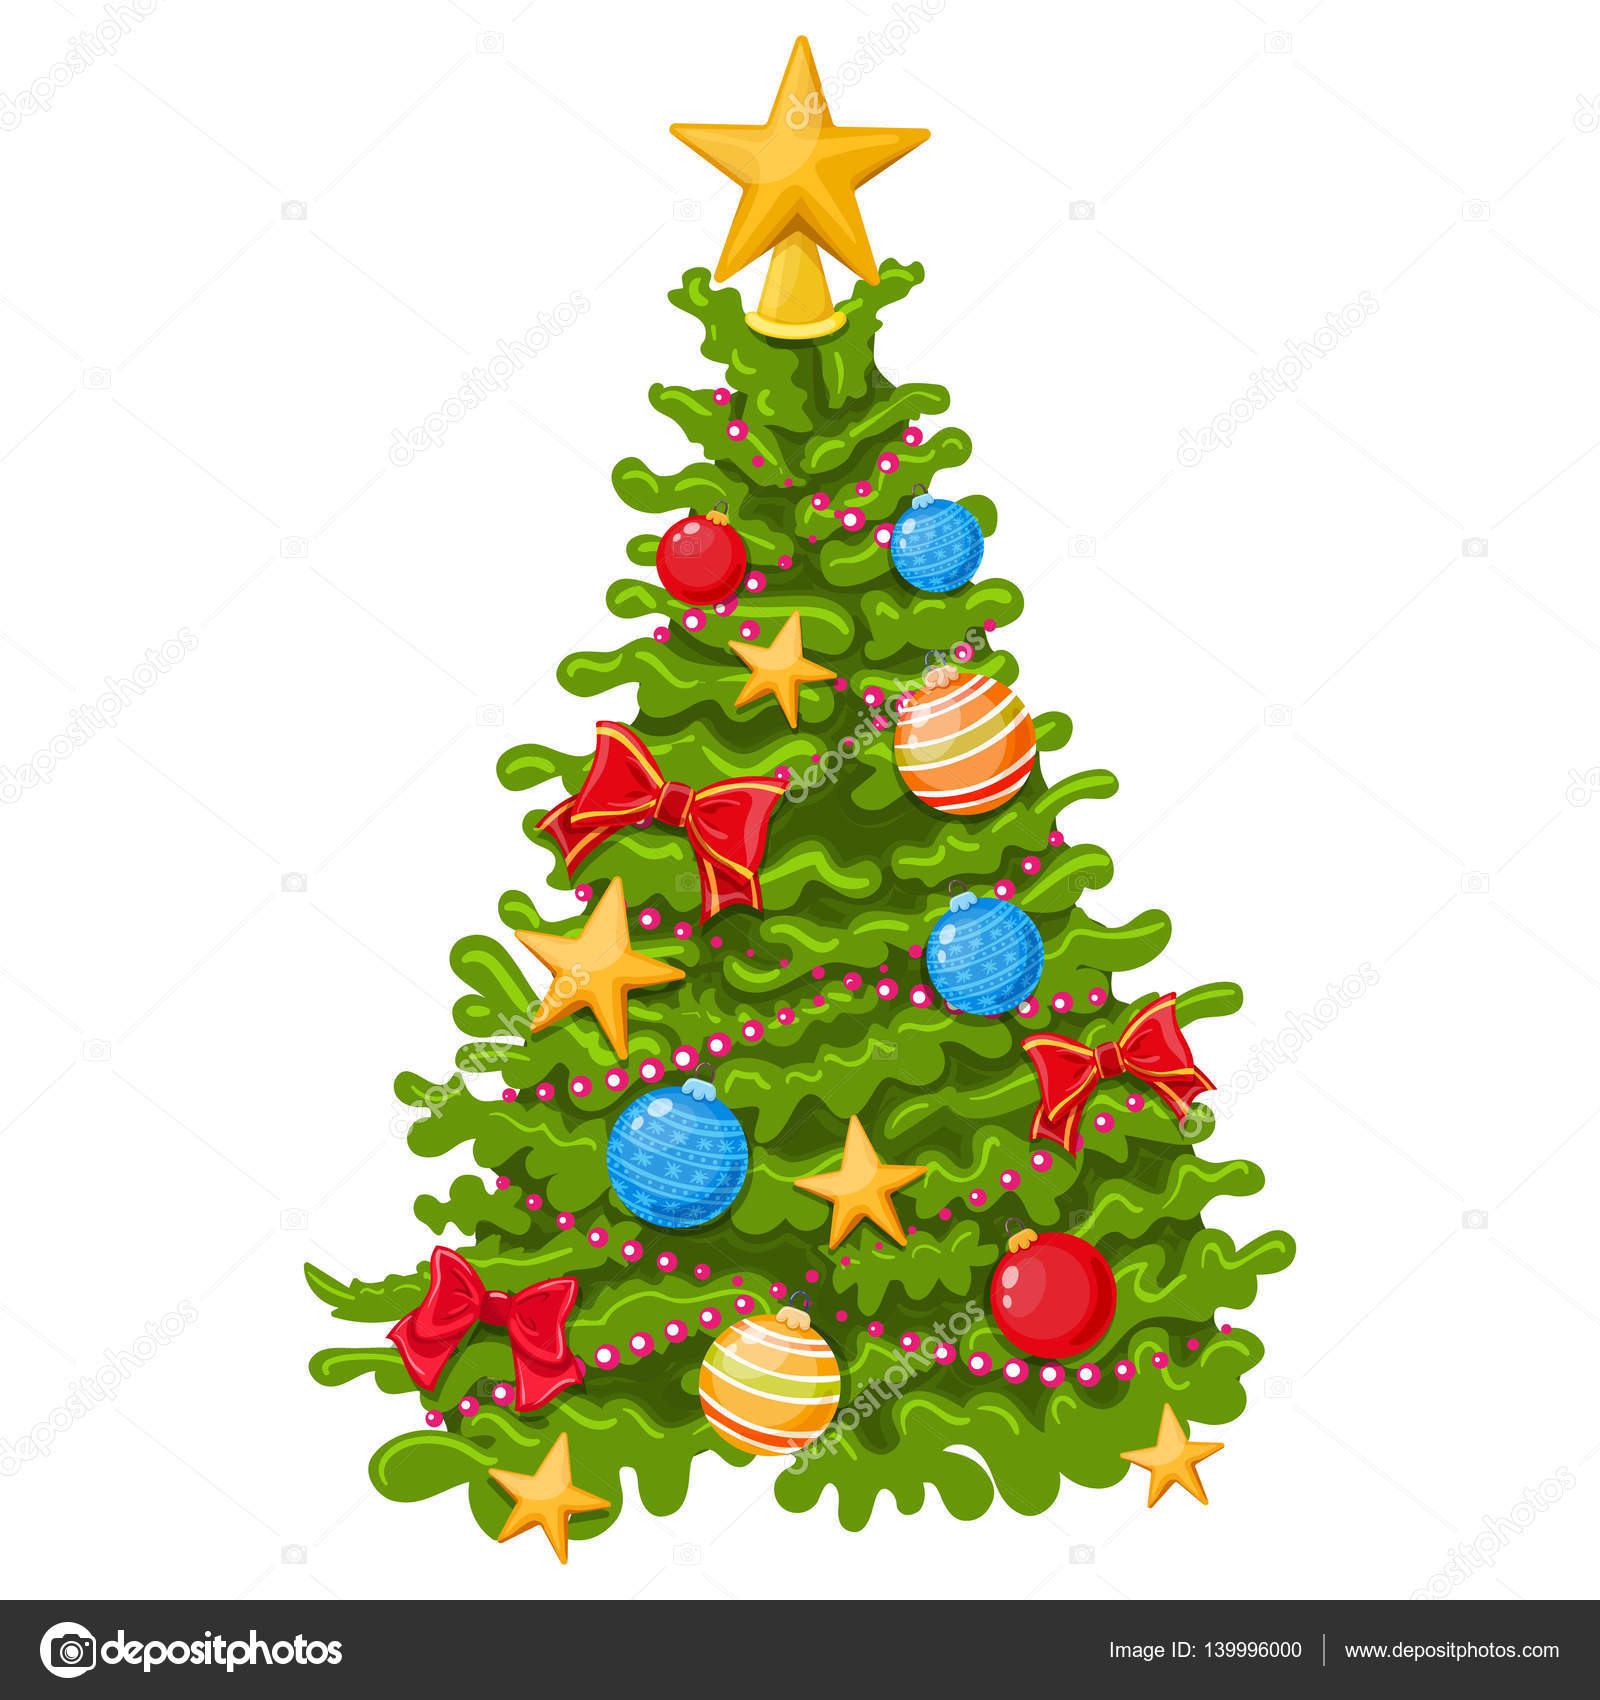 Colorful Christmas Tree Stock Vector C Alffisky Gmail Com 139996000